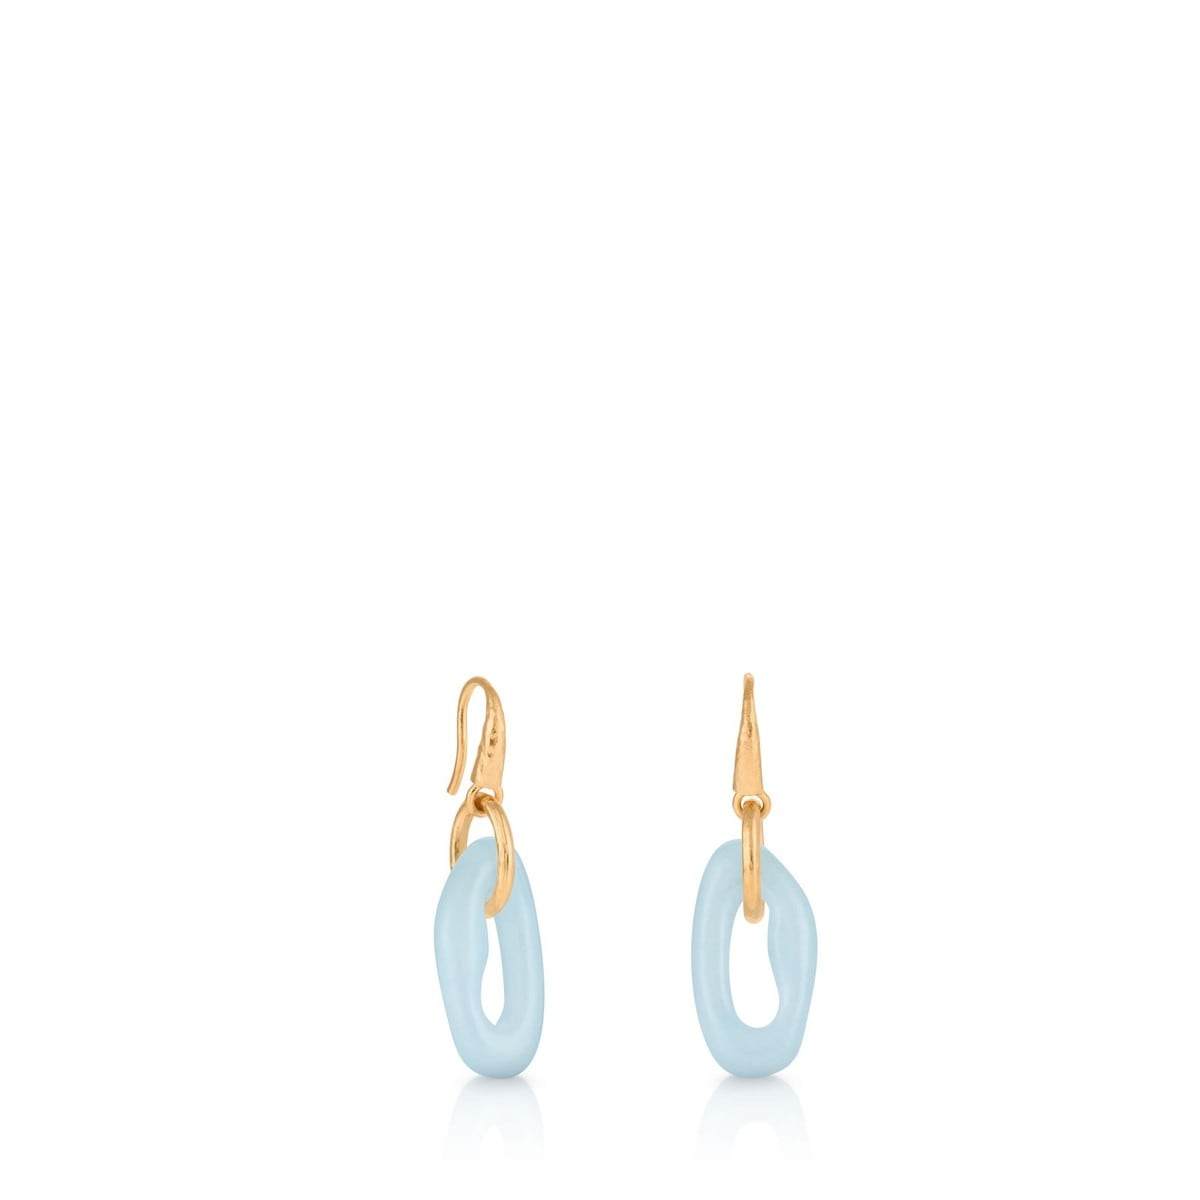 Vermeil Silver Duna Earrings with Chalcedony